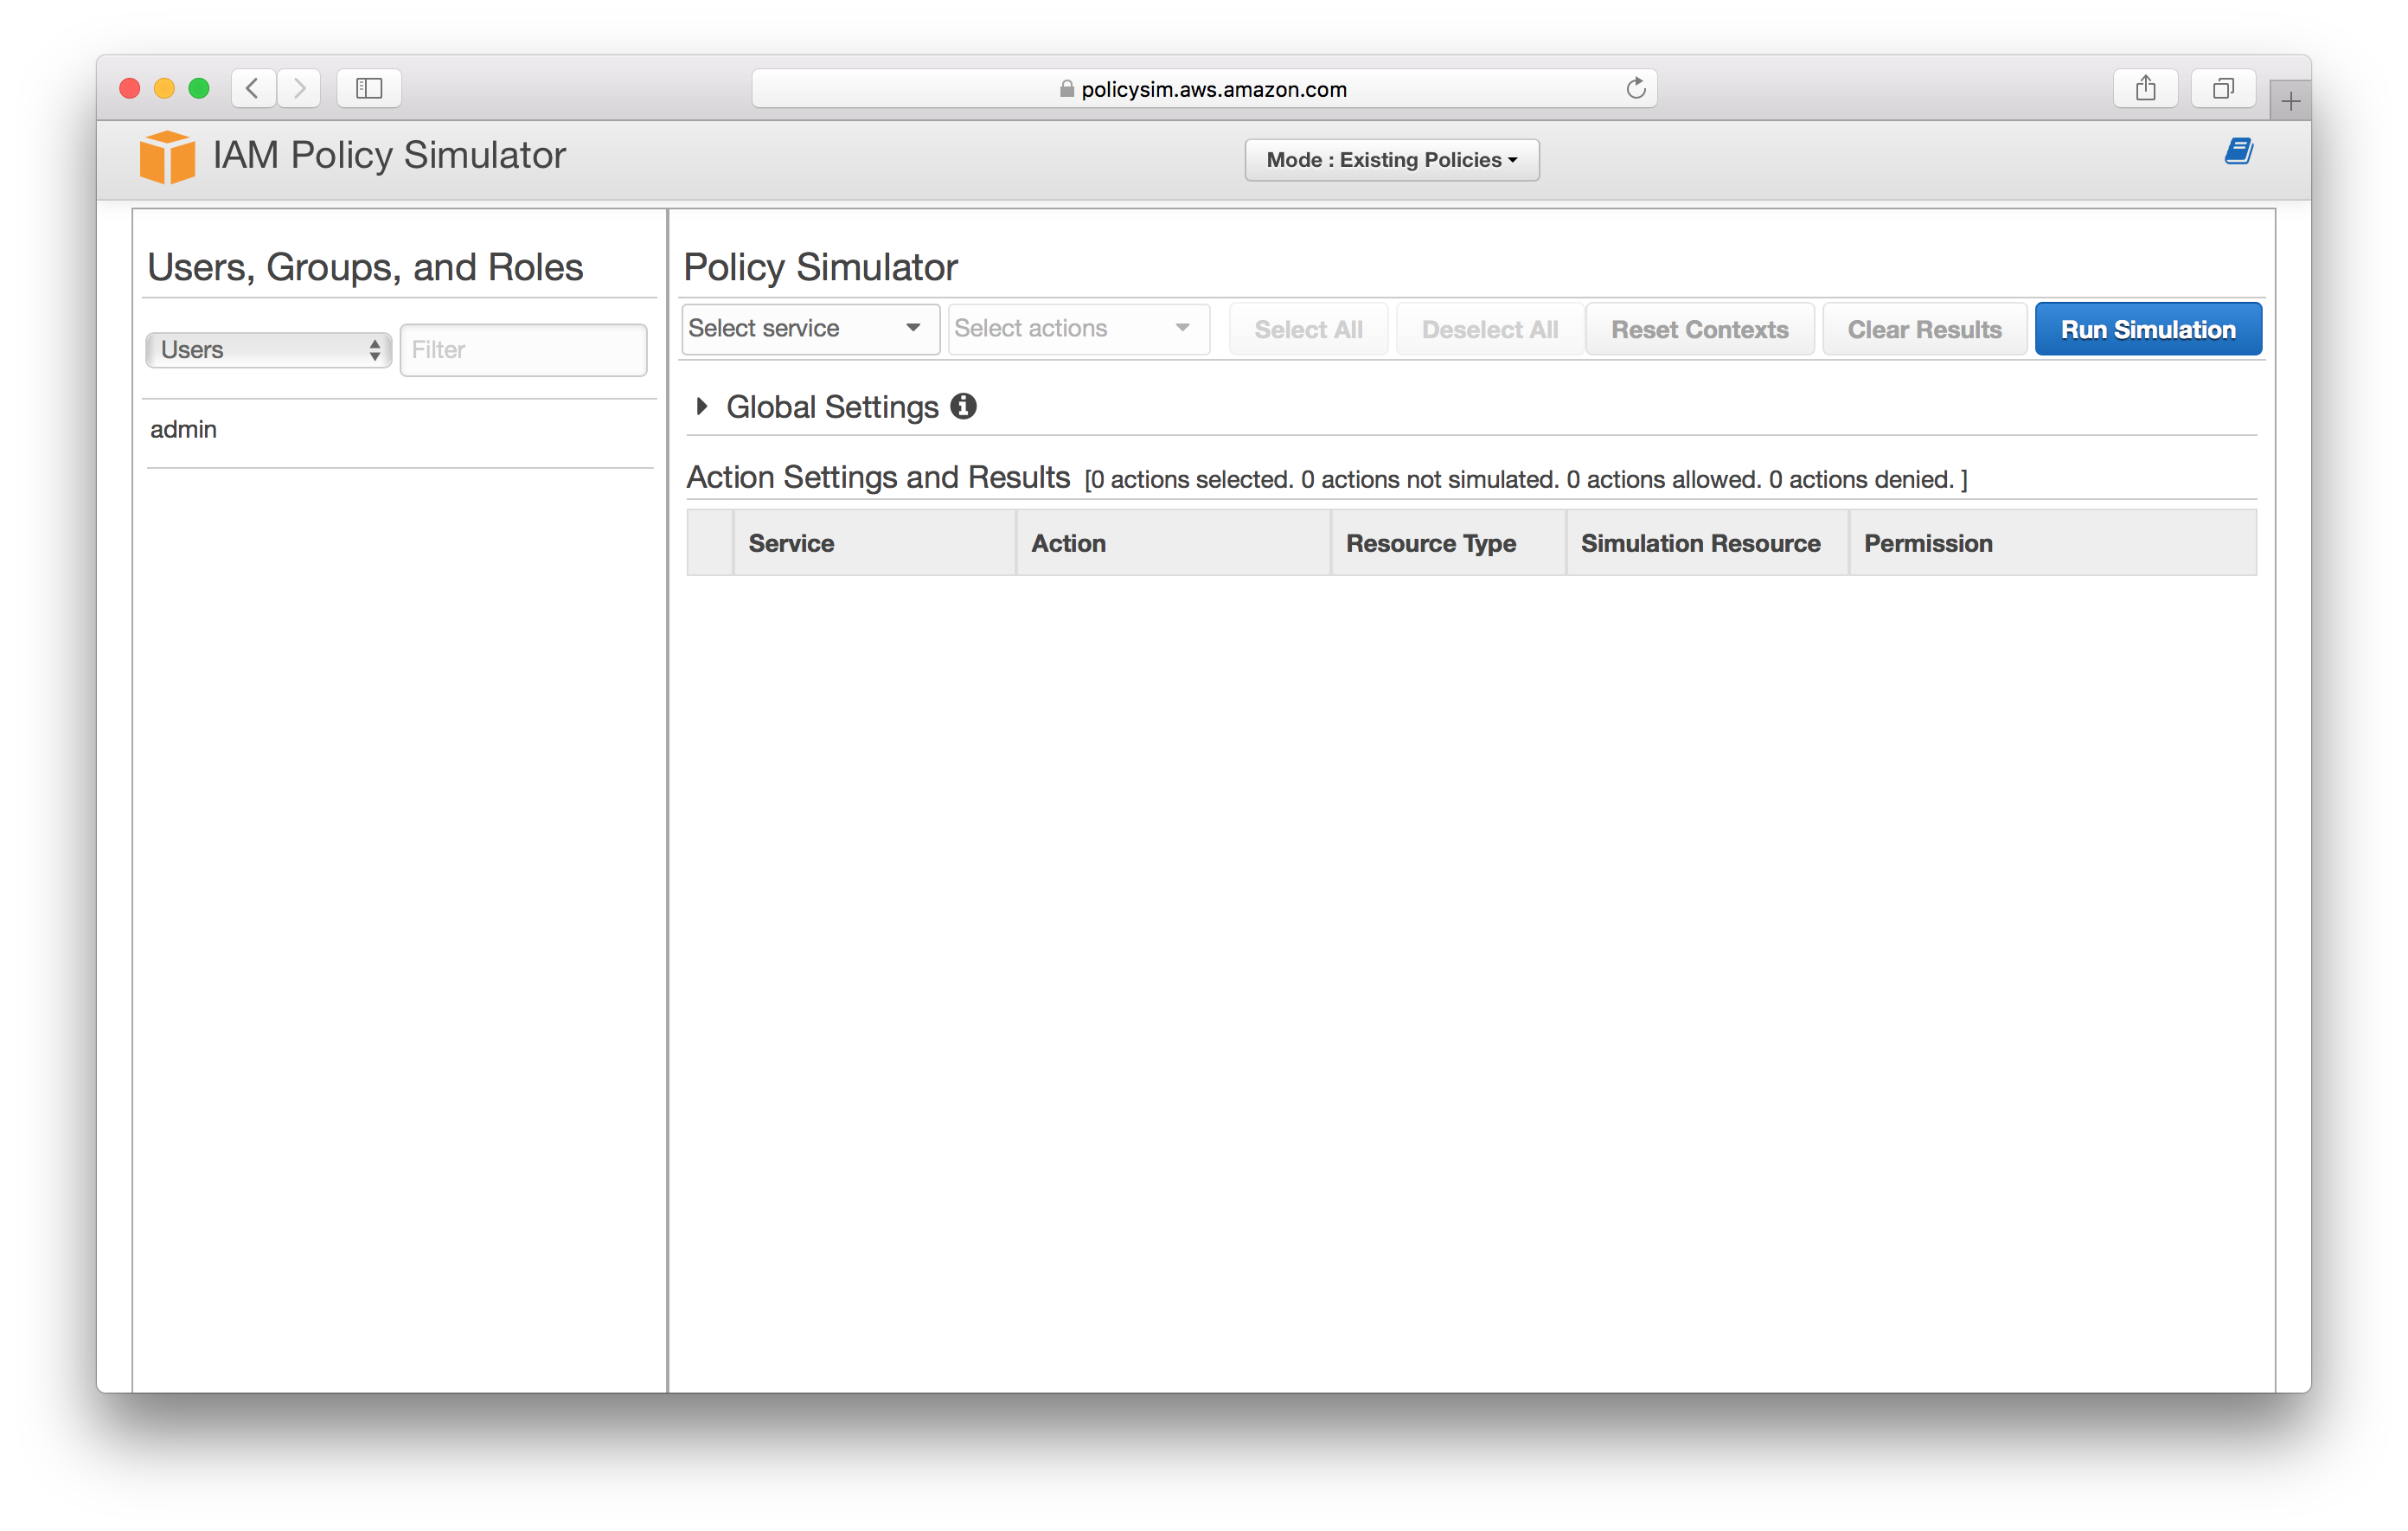 Open IAM Policy Simulator